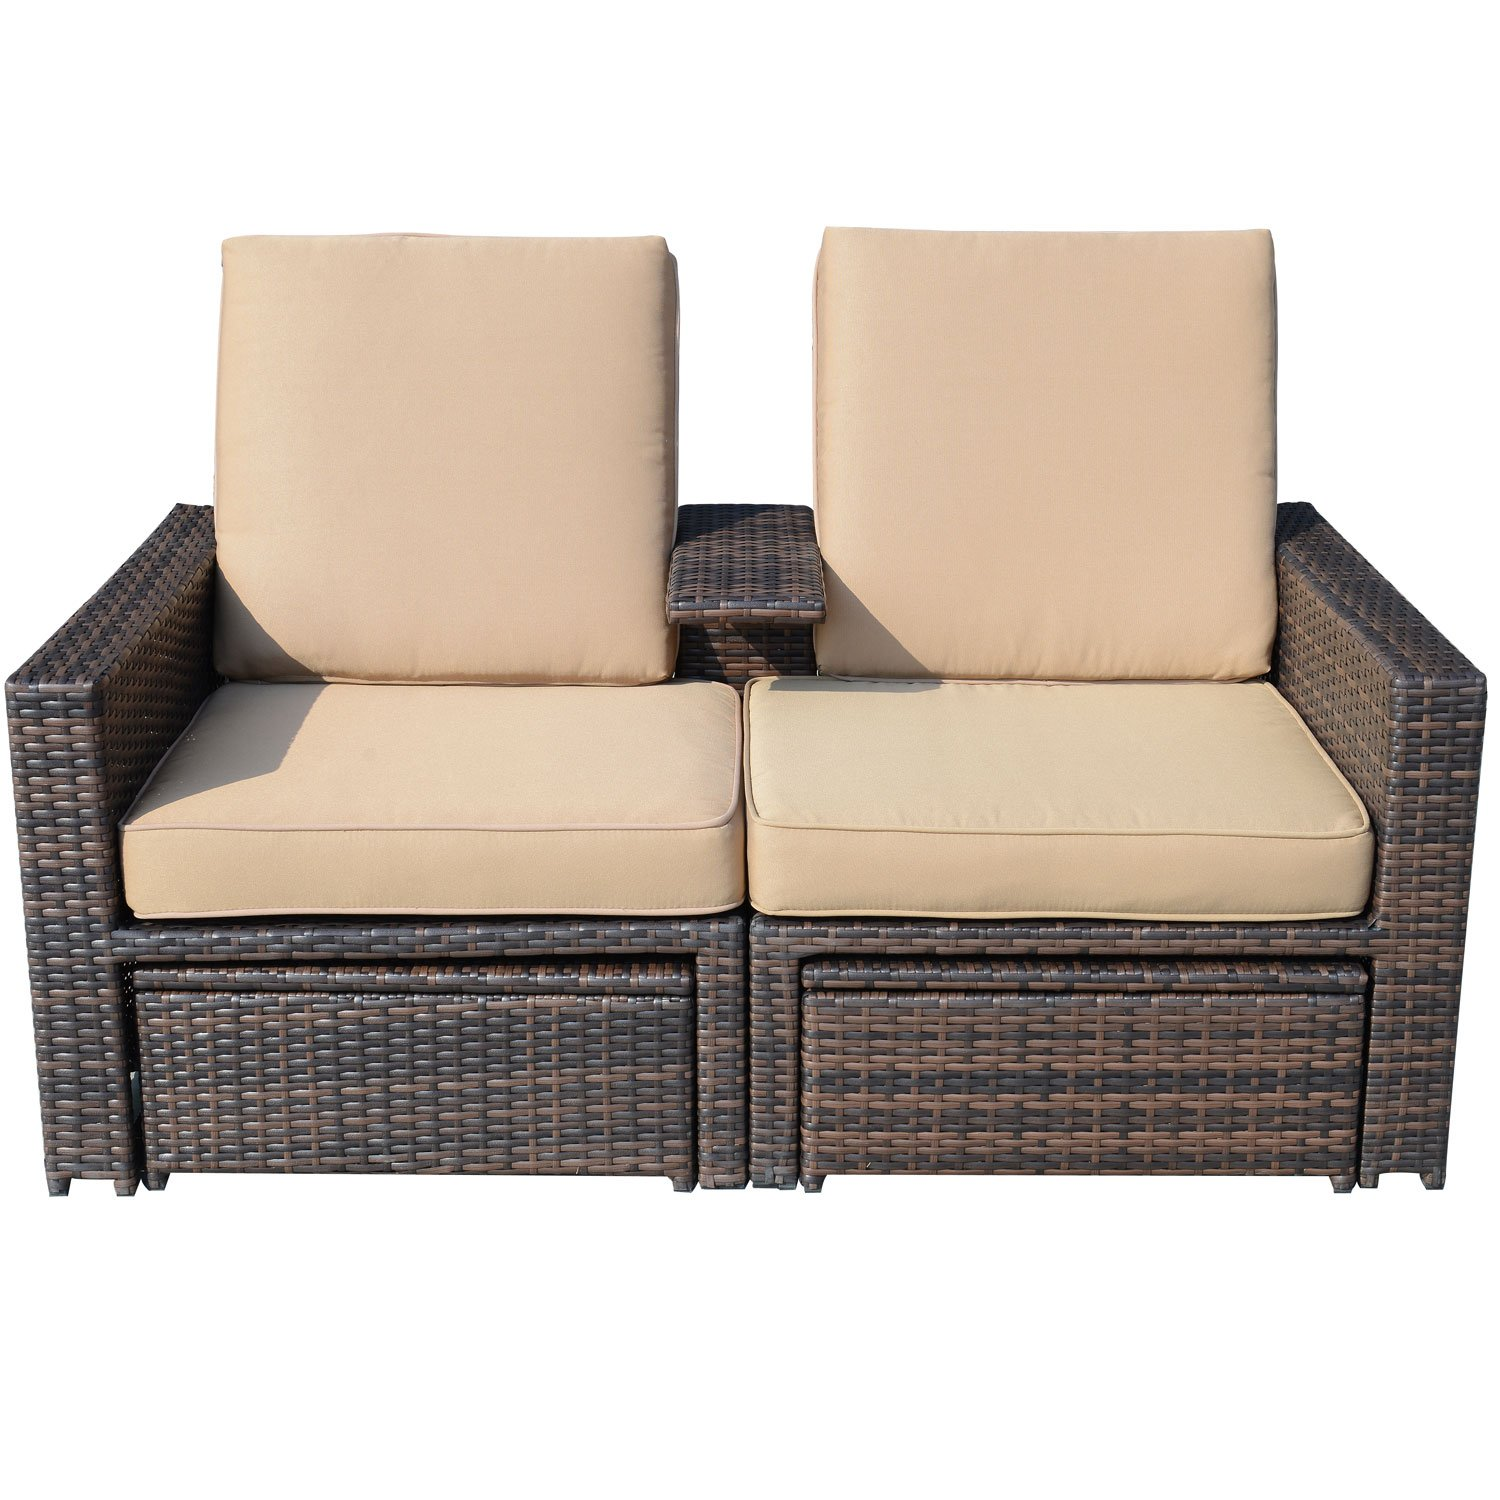 Chaise Lounge Outdoor Sofa Sutton Place Outdoor 3pc Seating Set 1